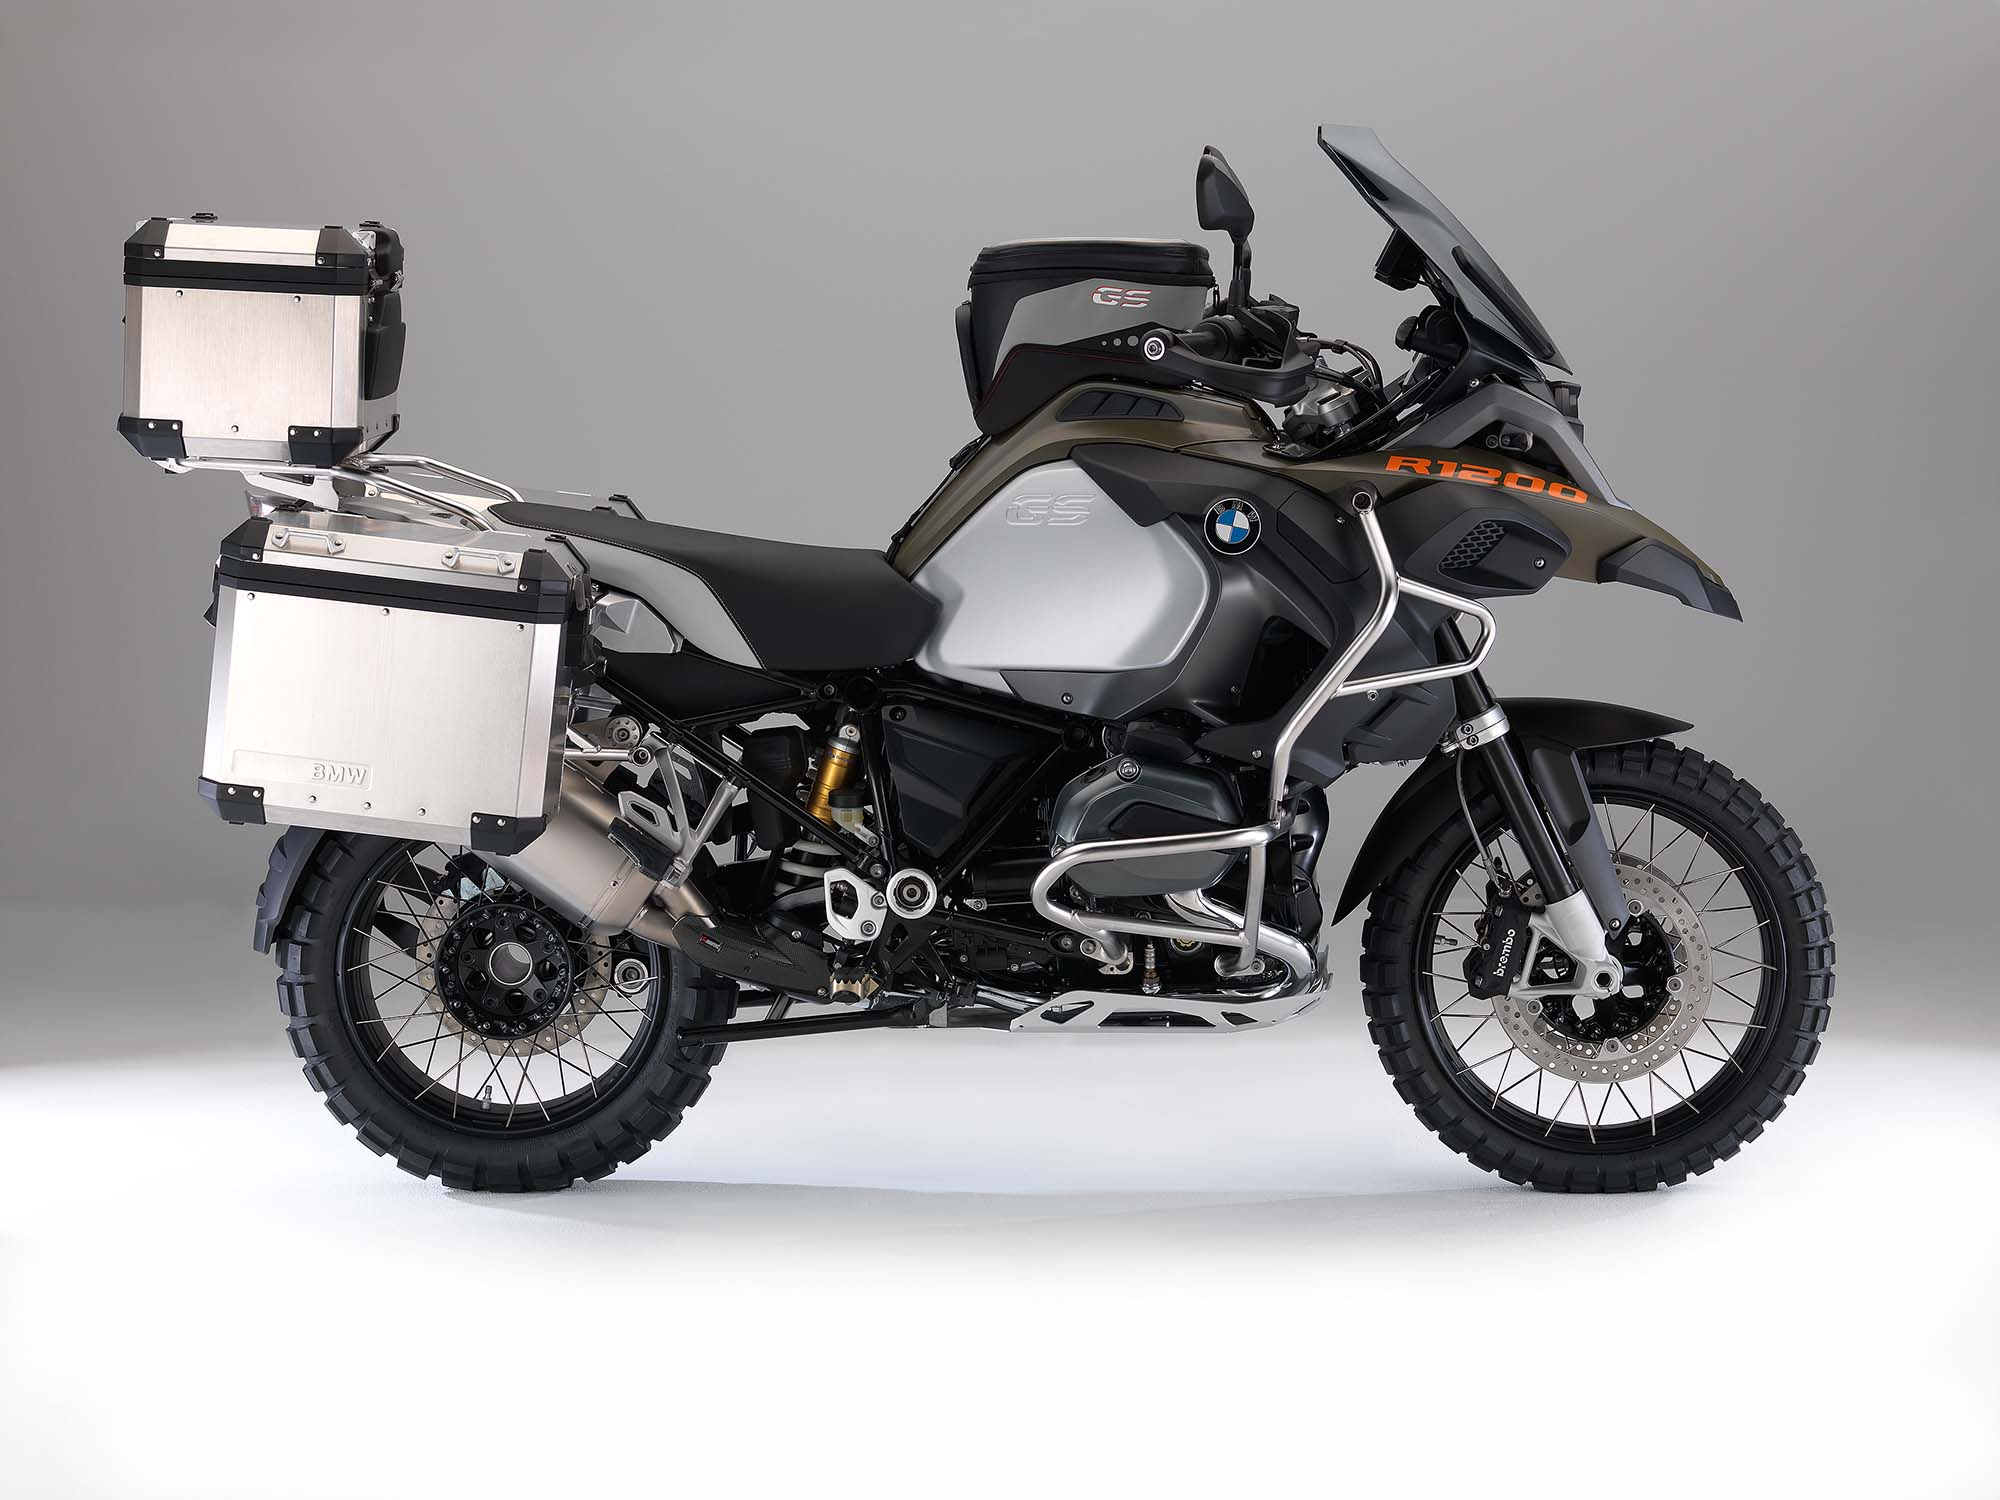 BMW E30 Wiring Diagrams moreover Ural Sidecar Motorcycle Girls also Winchester Model 64 together with 4V TVs Apache RTR 200 additionally 95 Camaro Wiring Harness Diagram. on k100 wiring diagram